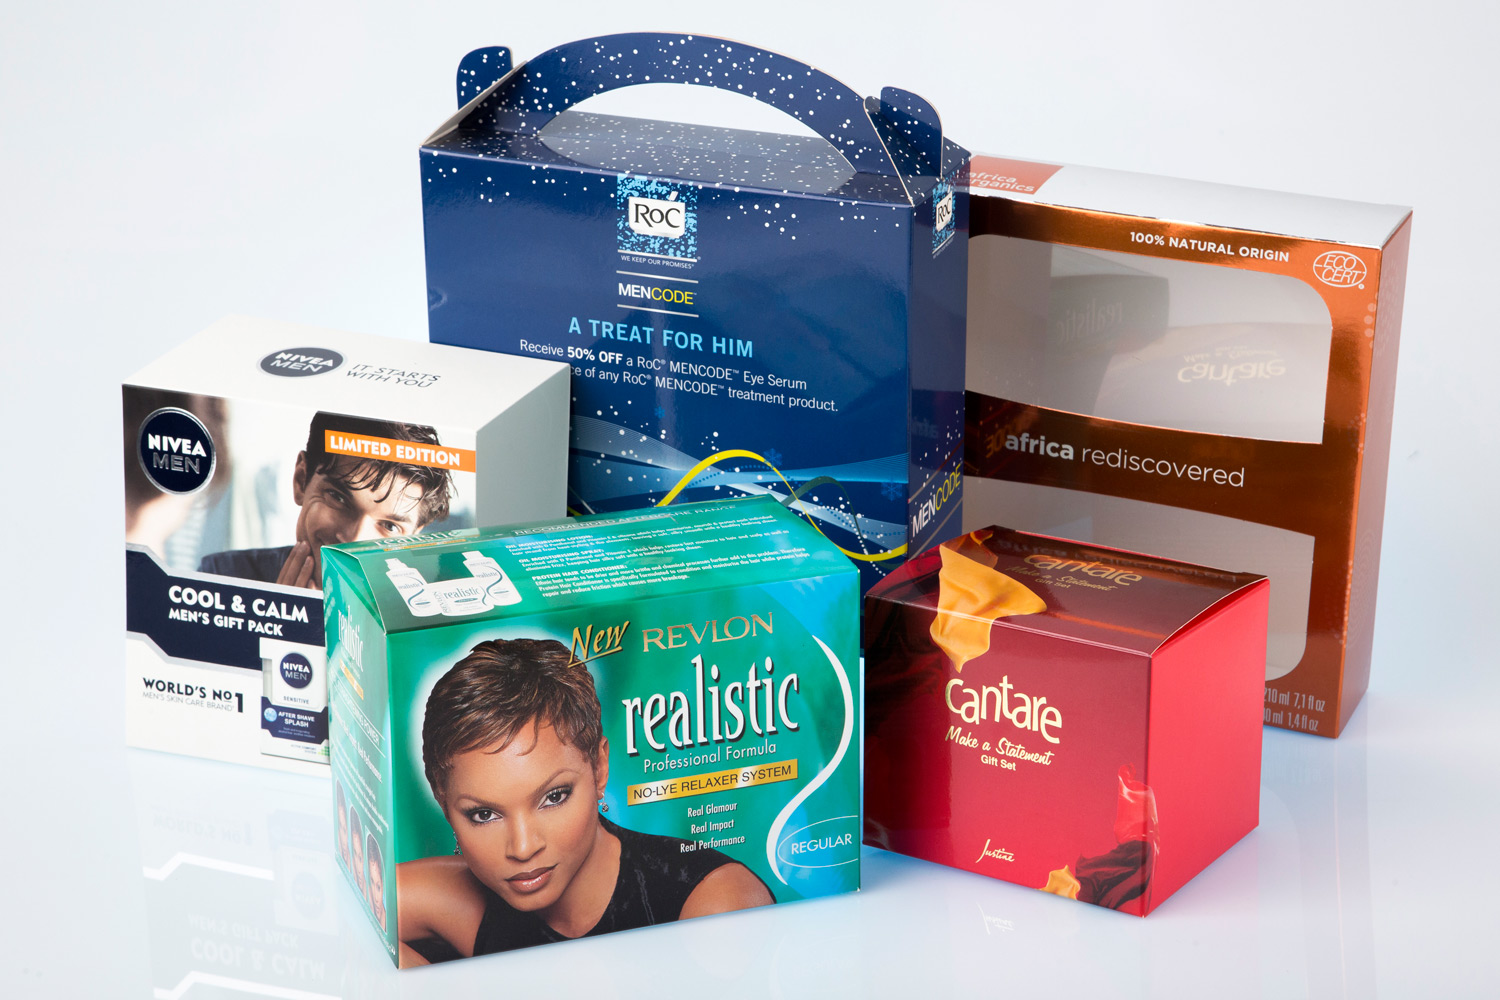 Lithographic Packaging & Label Printers 2